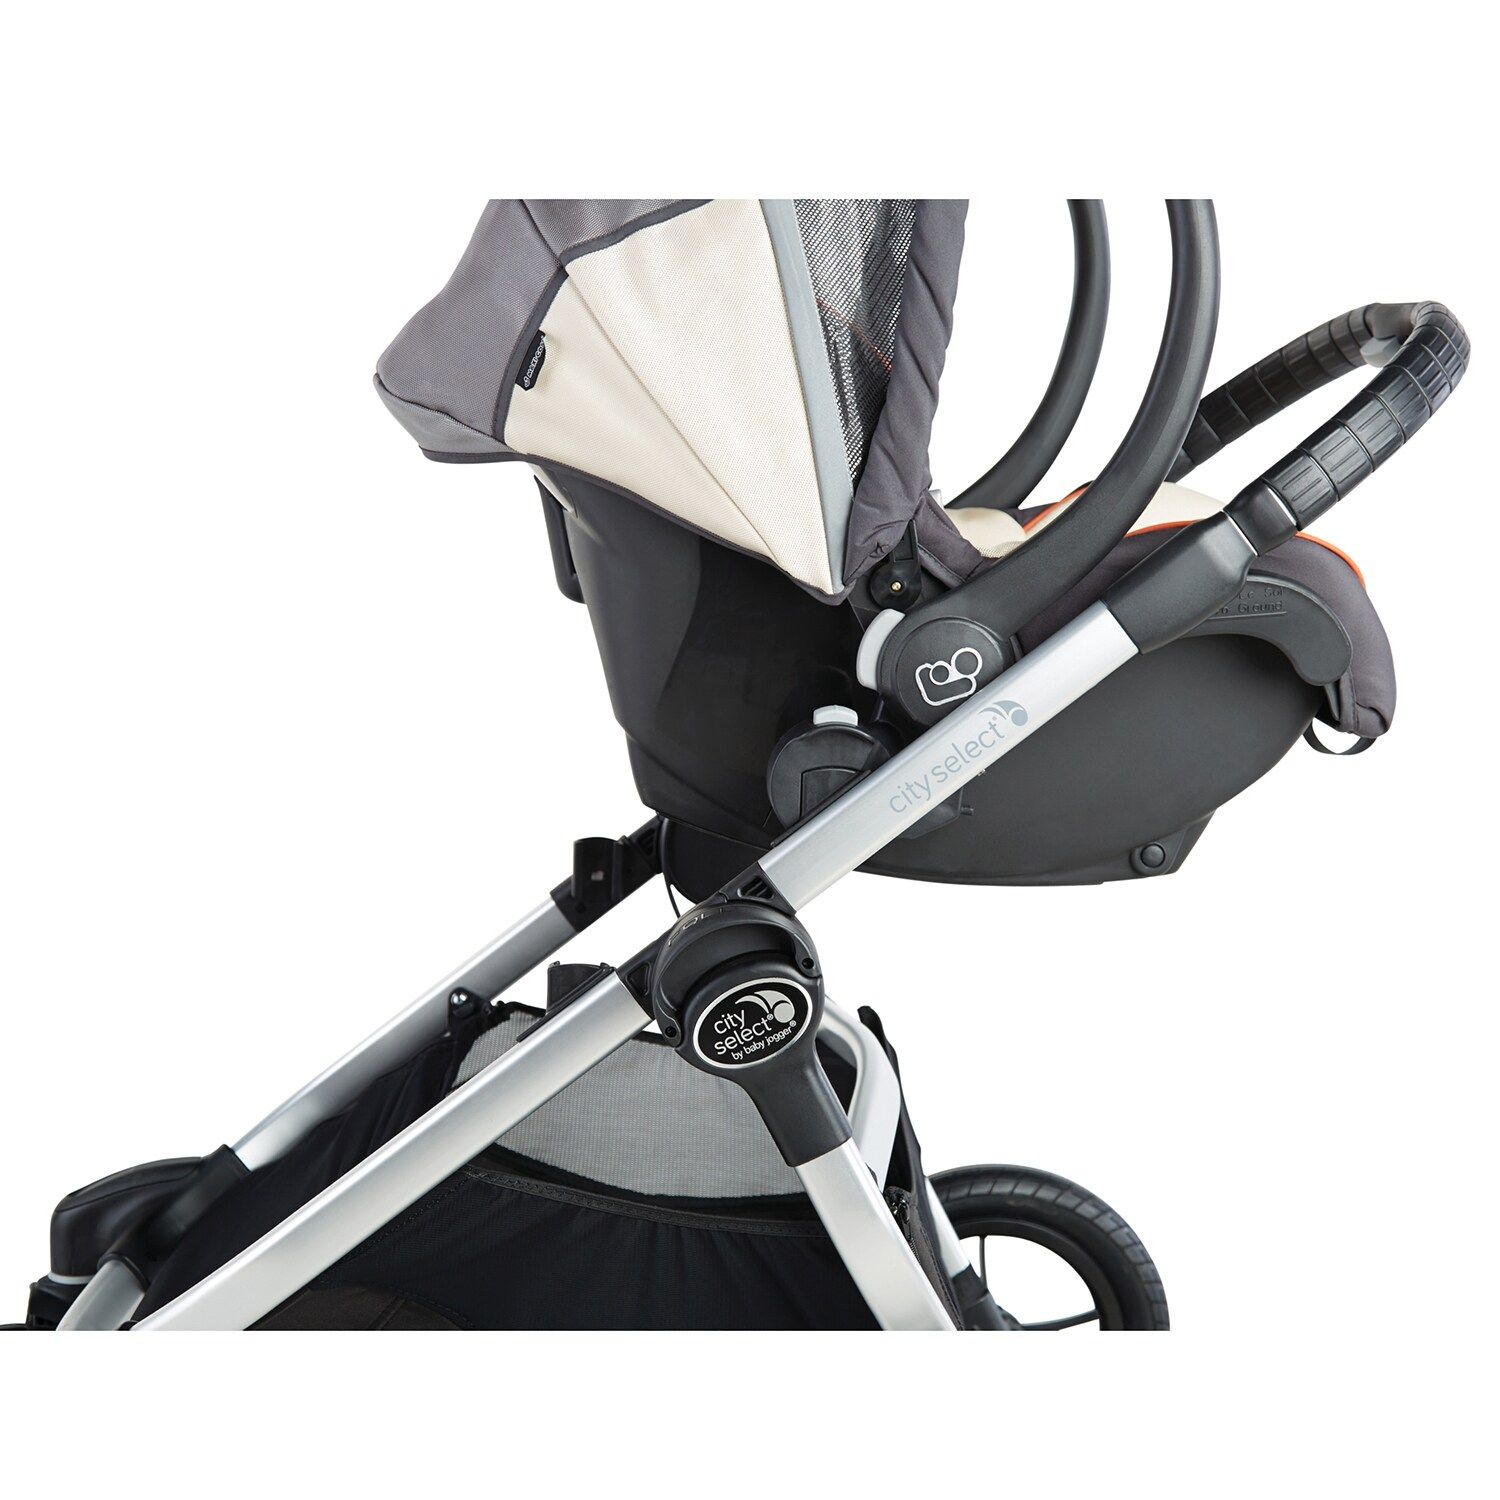 Cybex Car Seat Adapter For Maxi Cosi City Select City Premier Seat Adapter Cybex Car Car Seats Baby Jogger Baby Car Seats